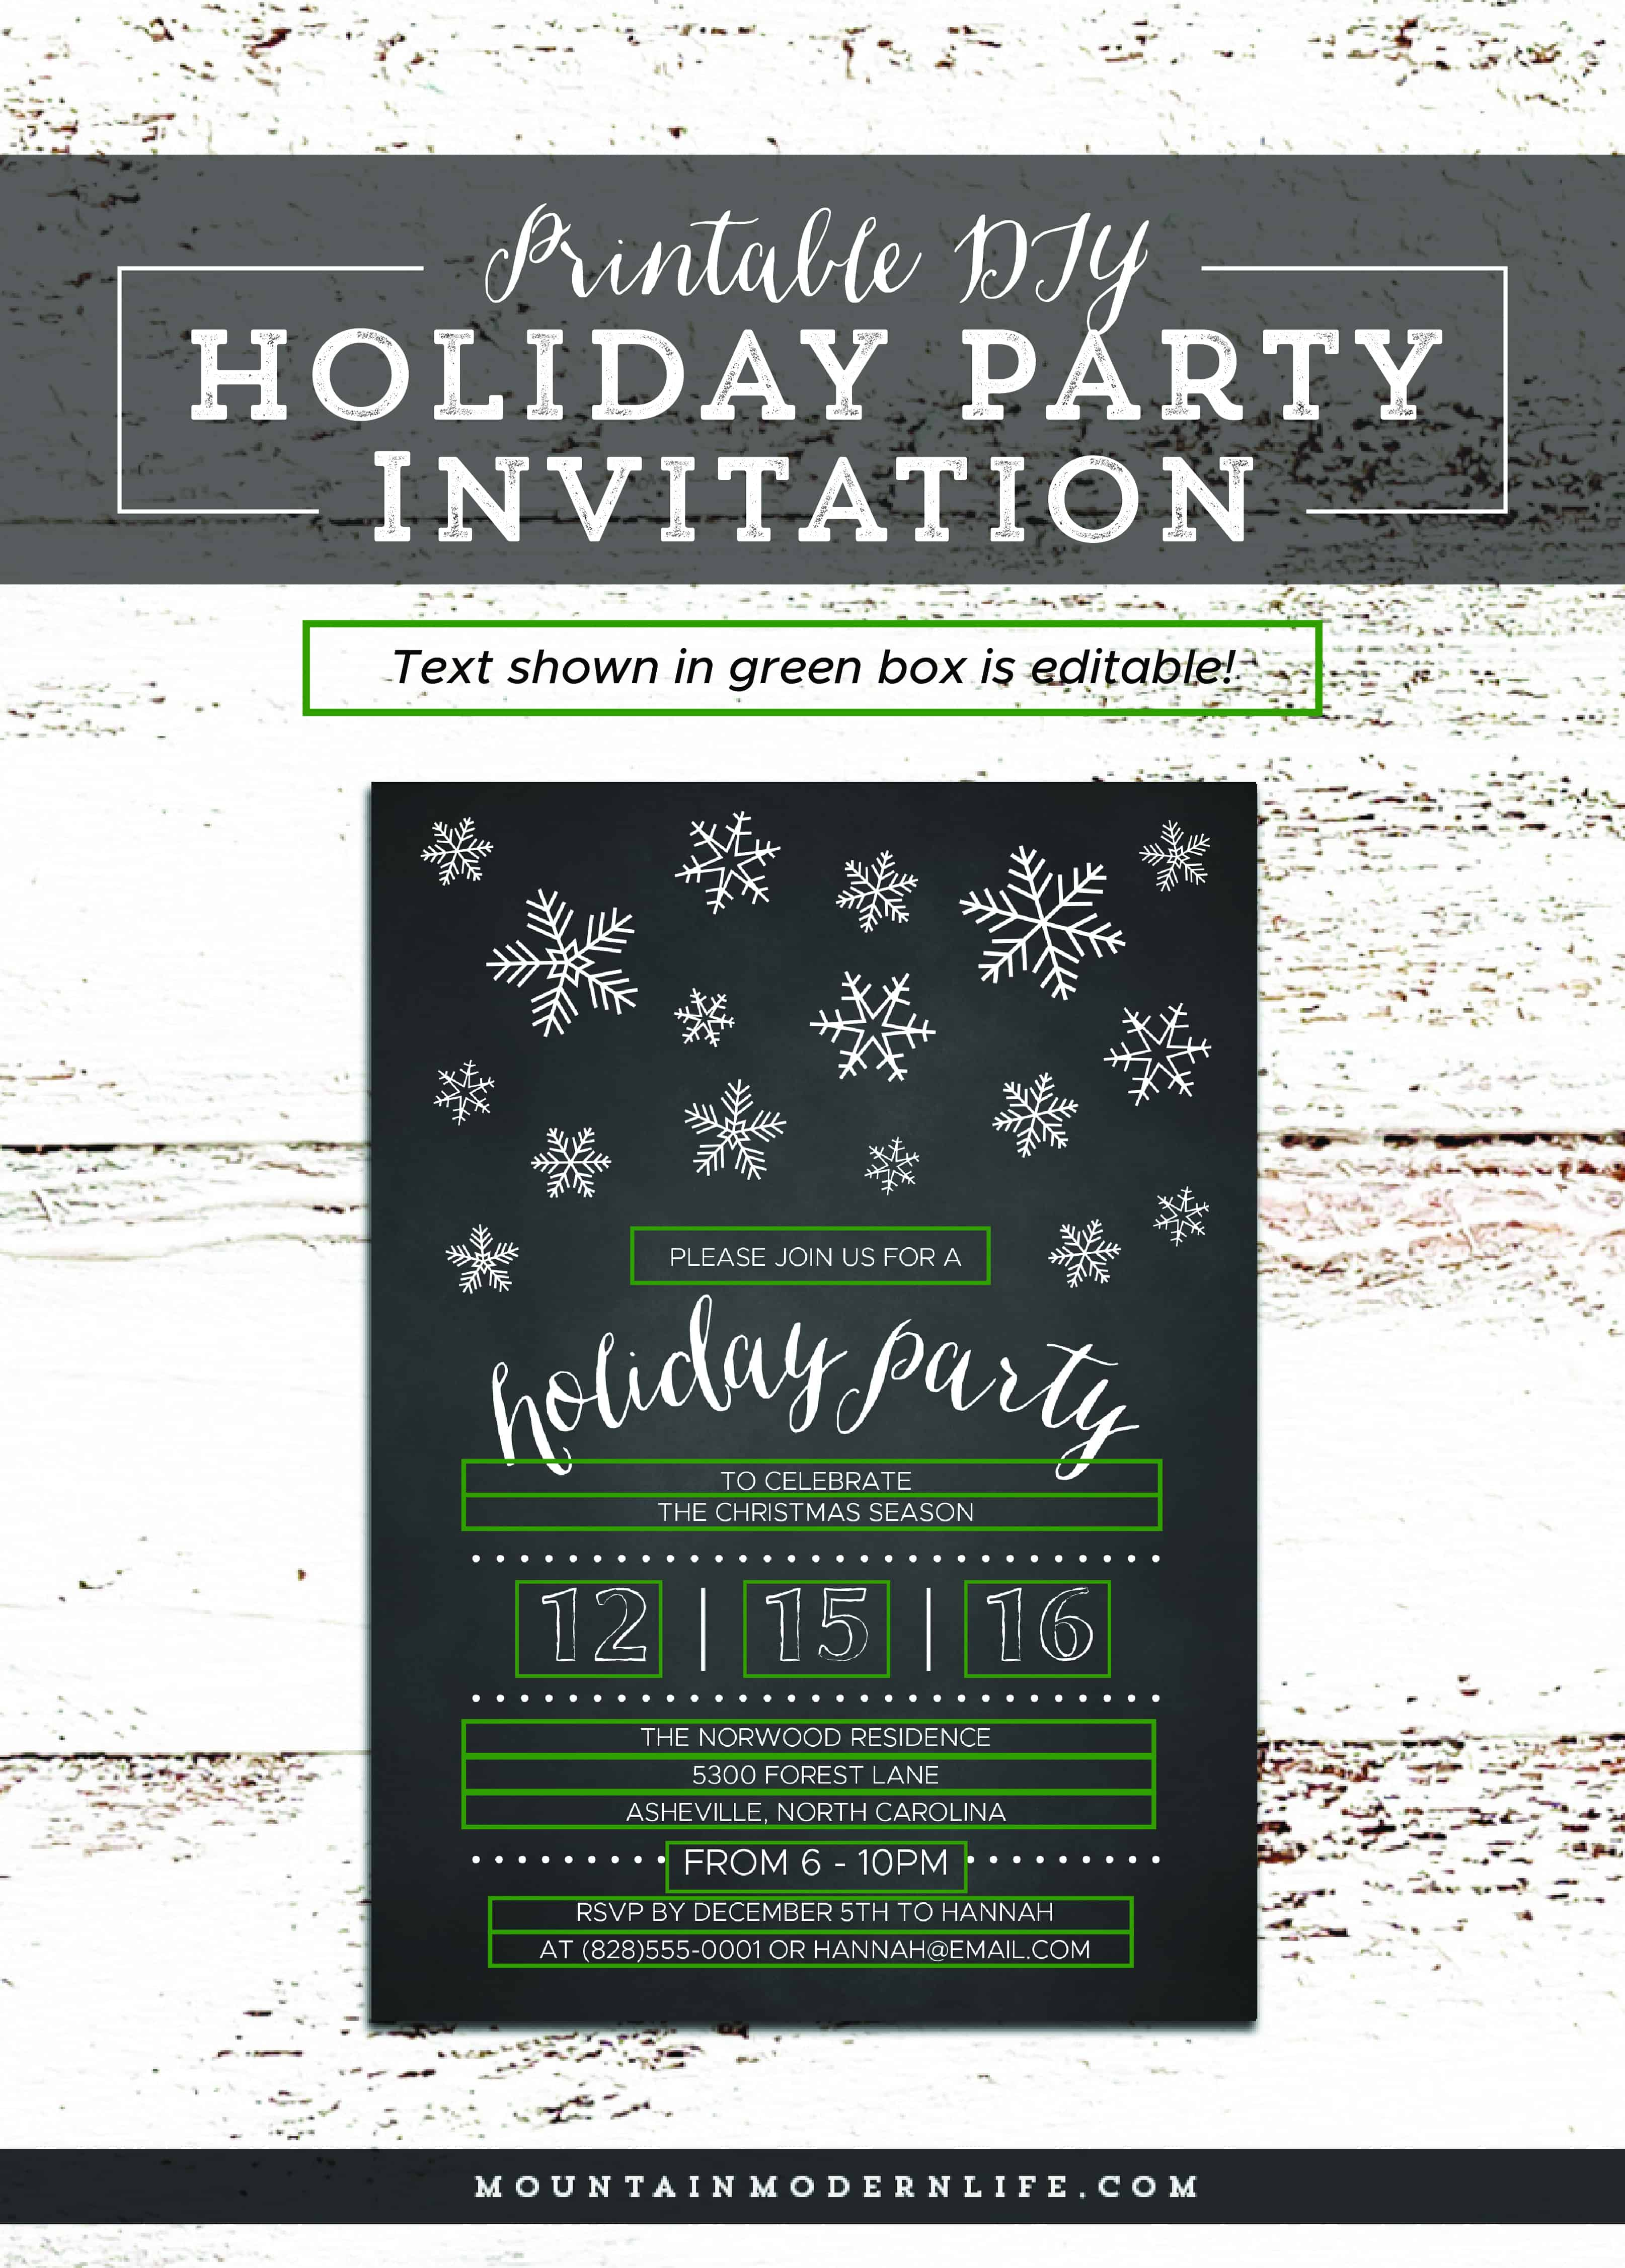 office dinner party invitation template - Picture Ideas References